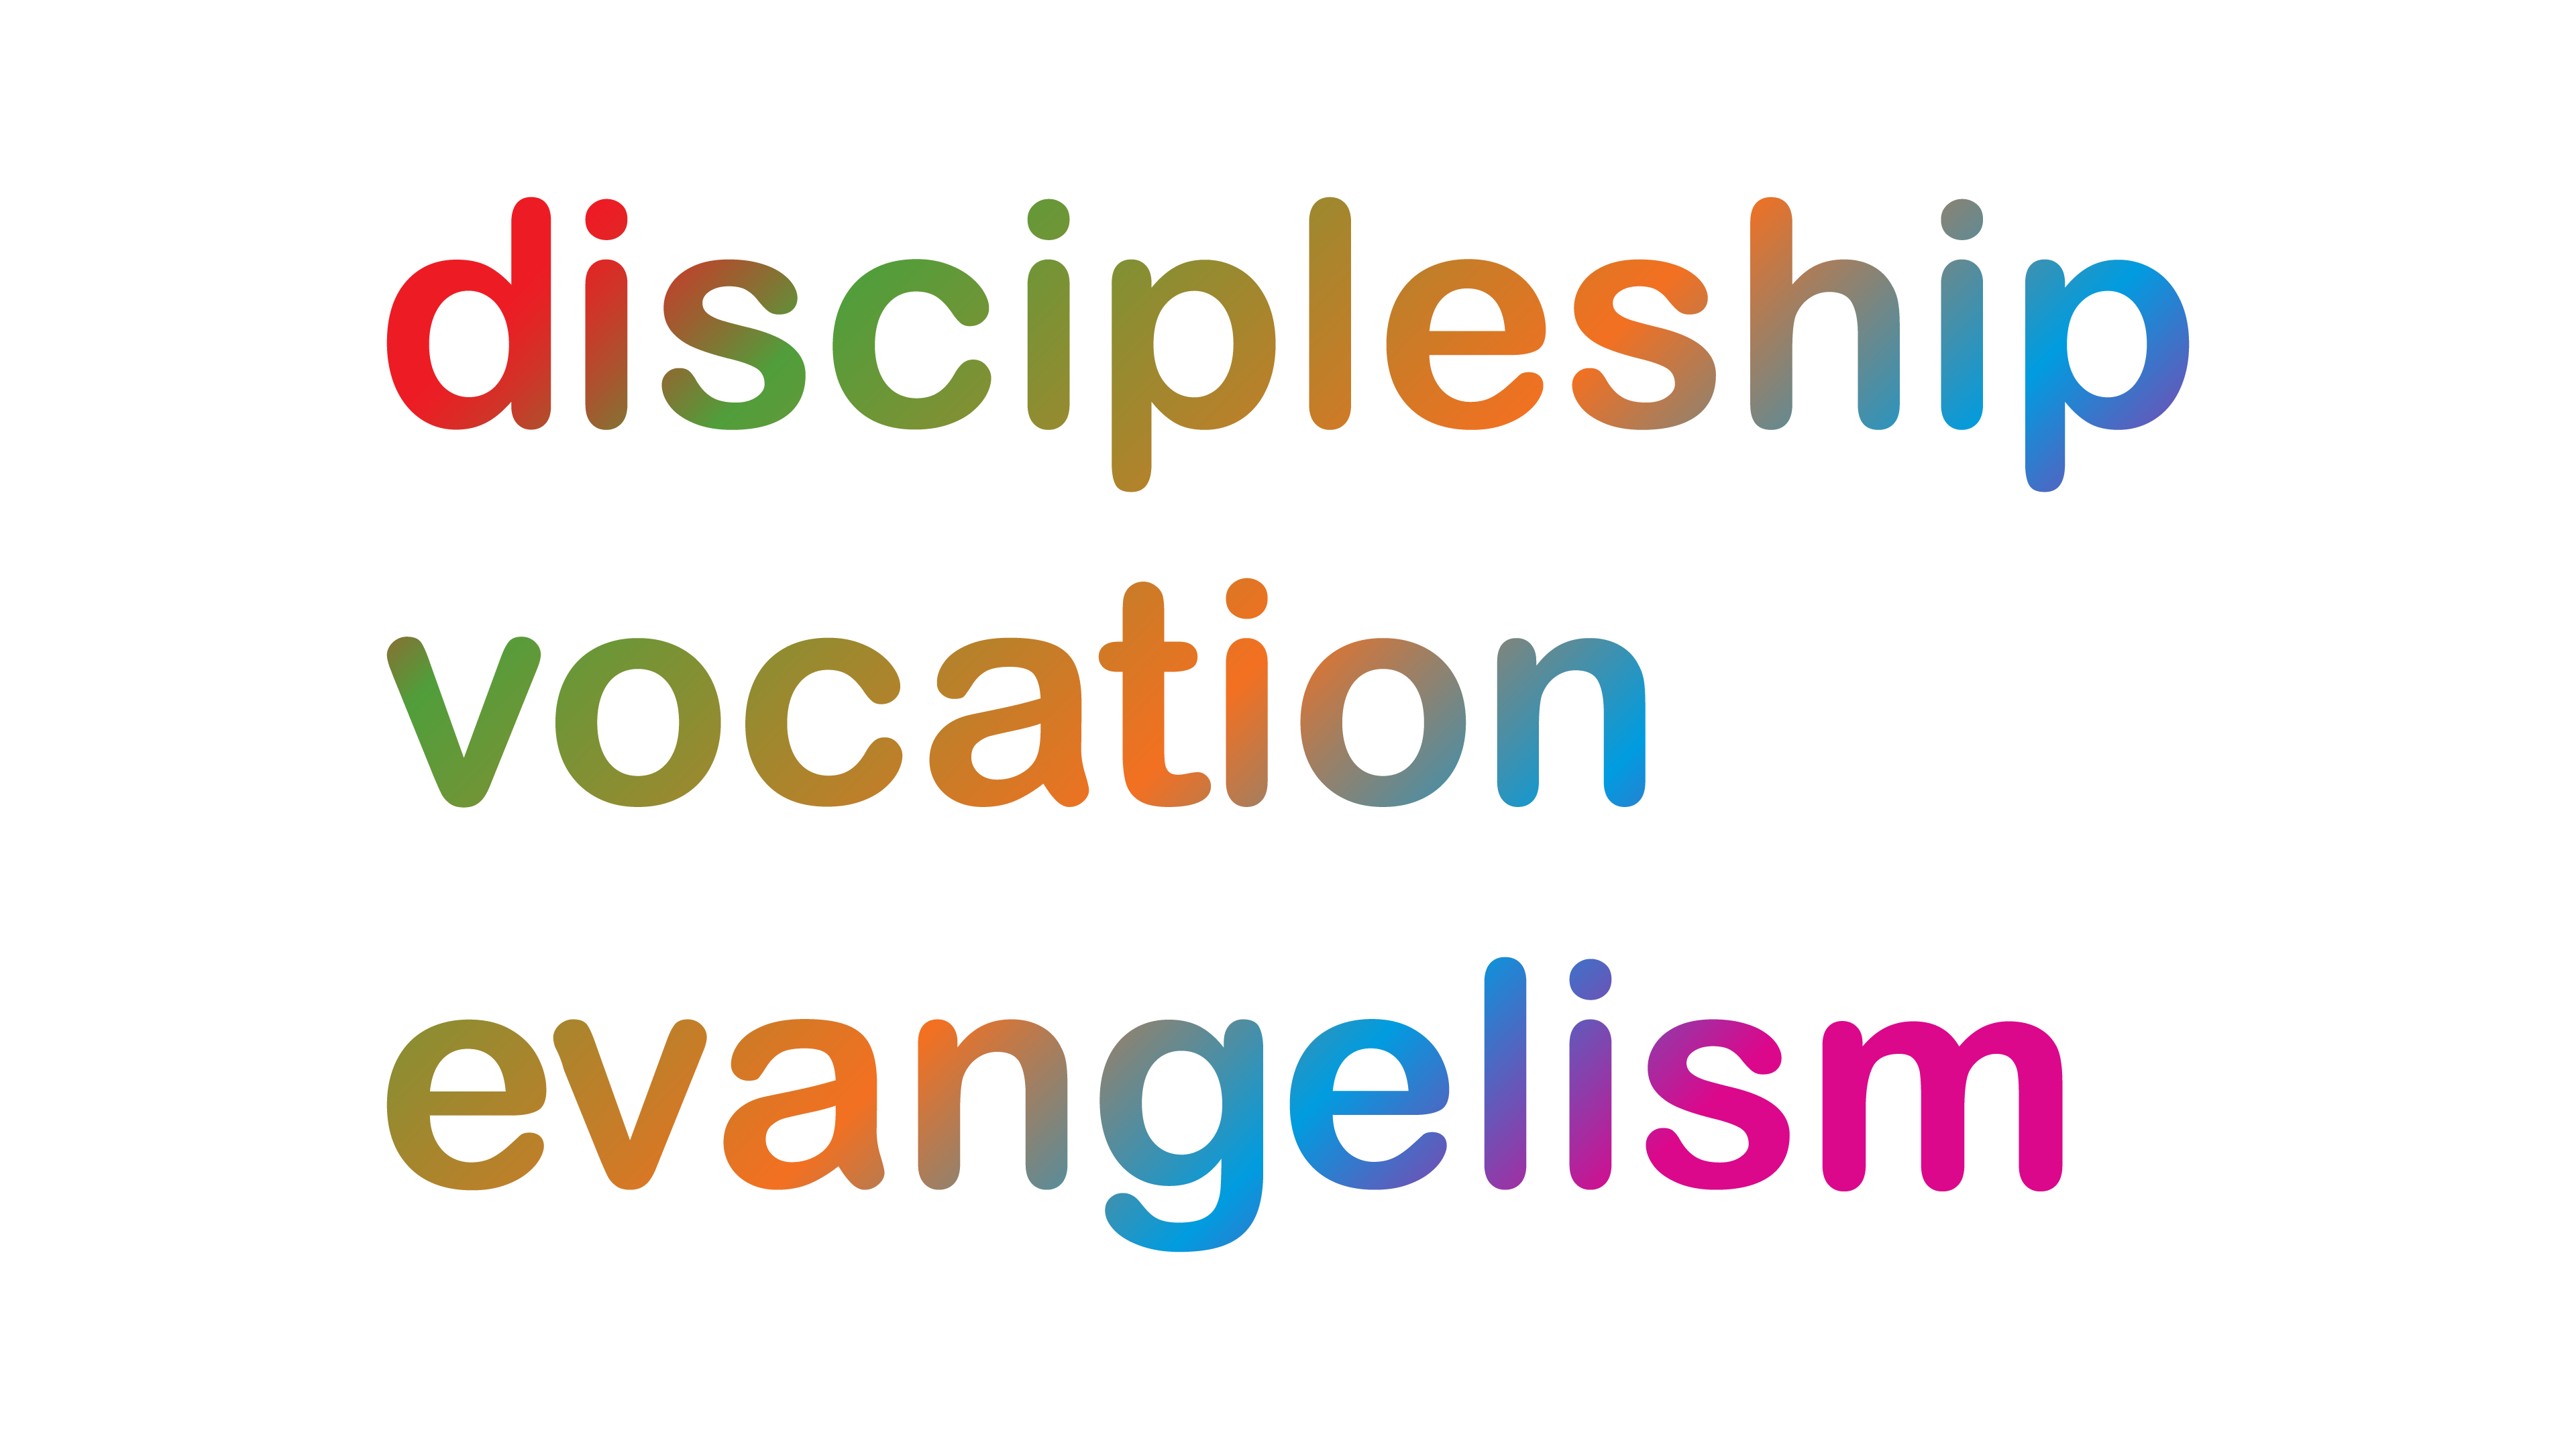 Discipleship - Vocation - Evangelism workmark in a spectrum of colours